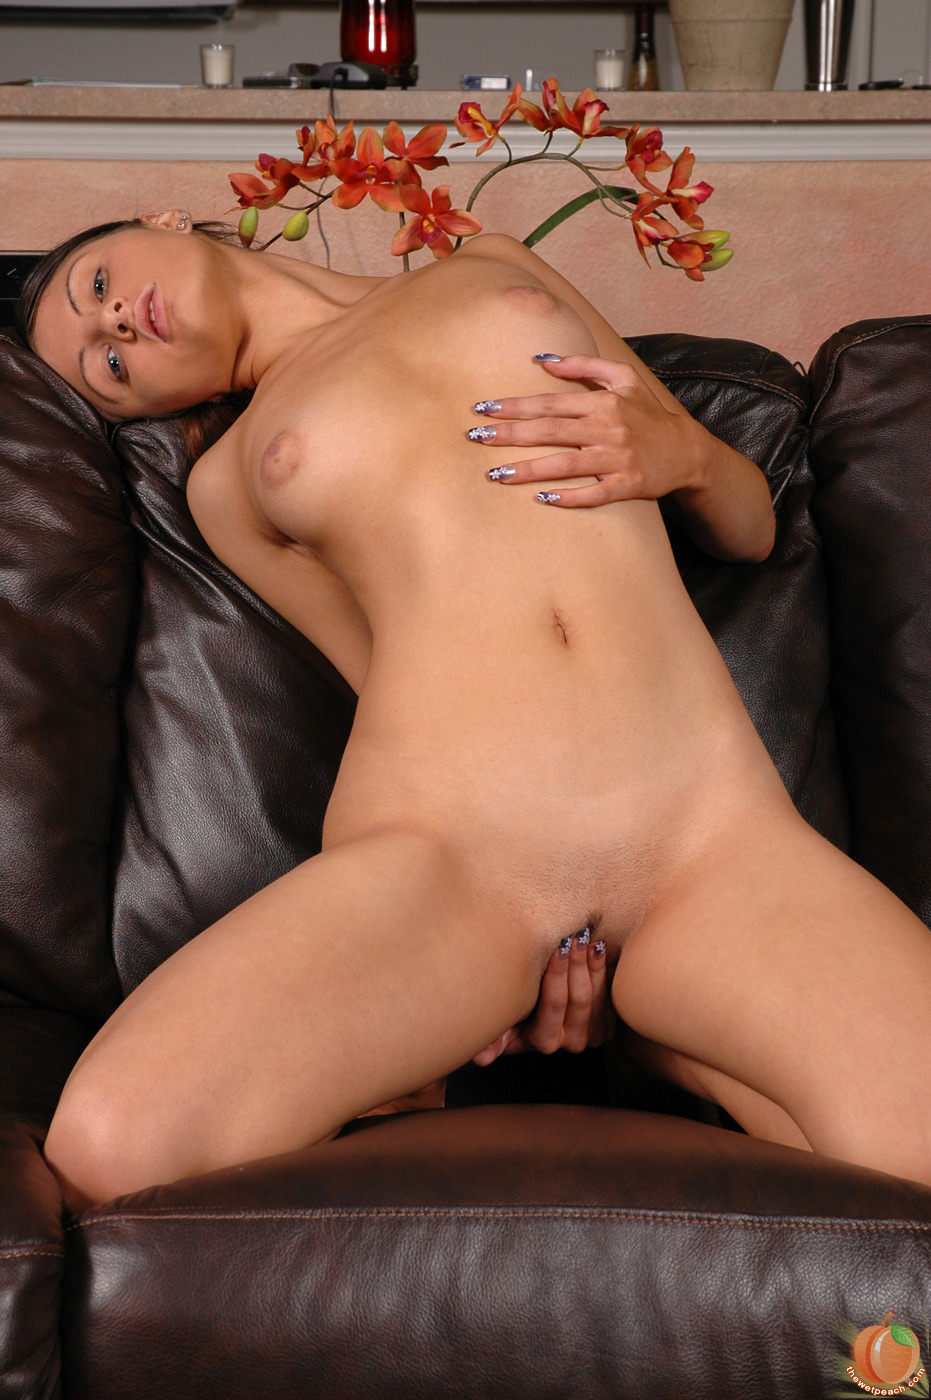 Hot mexican girl masturbating